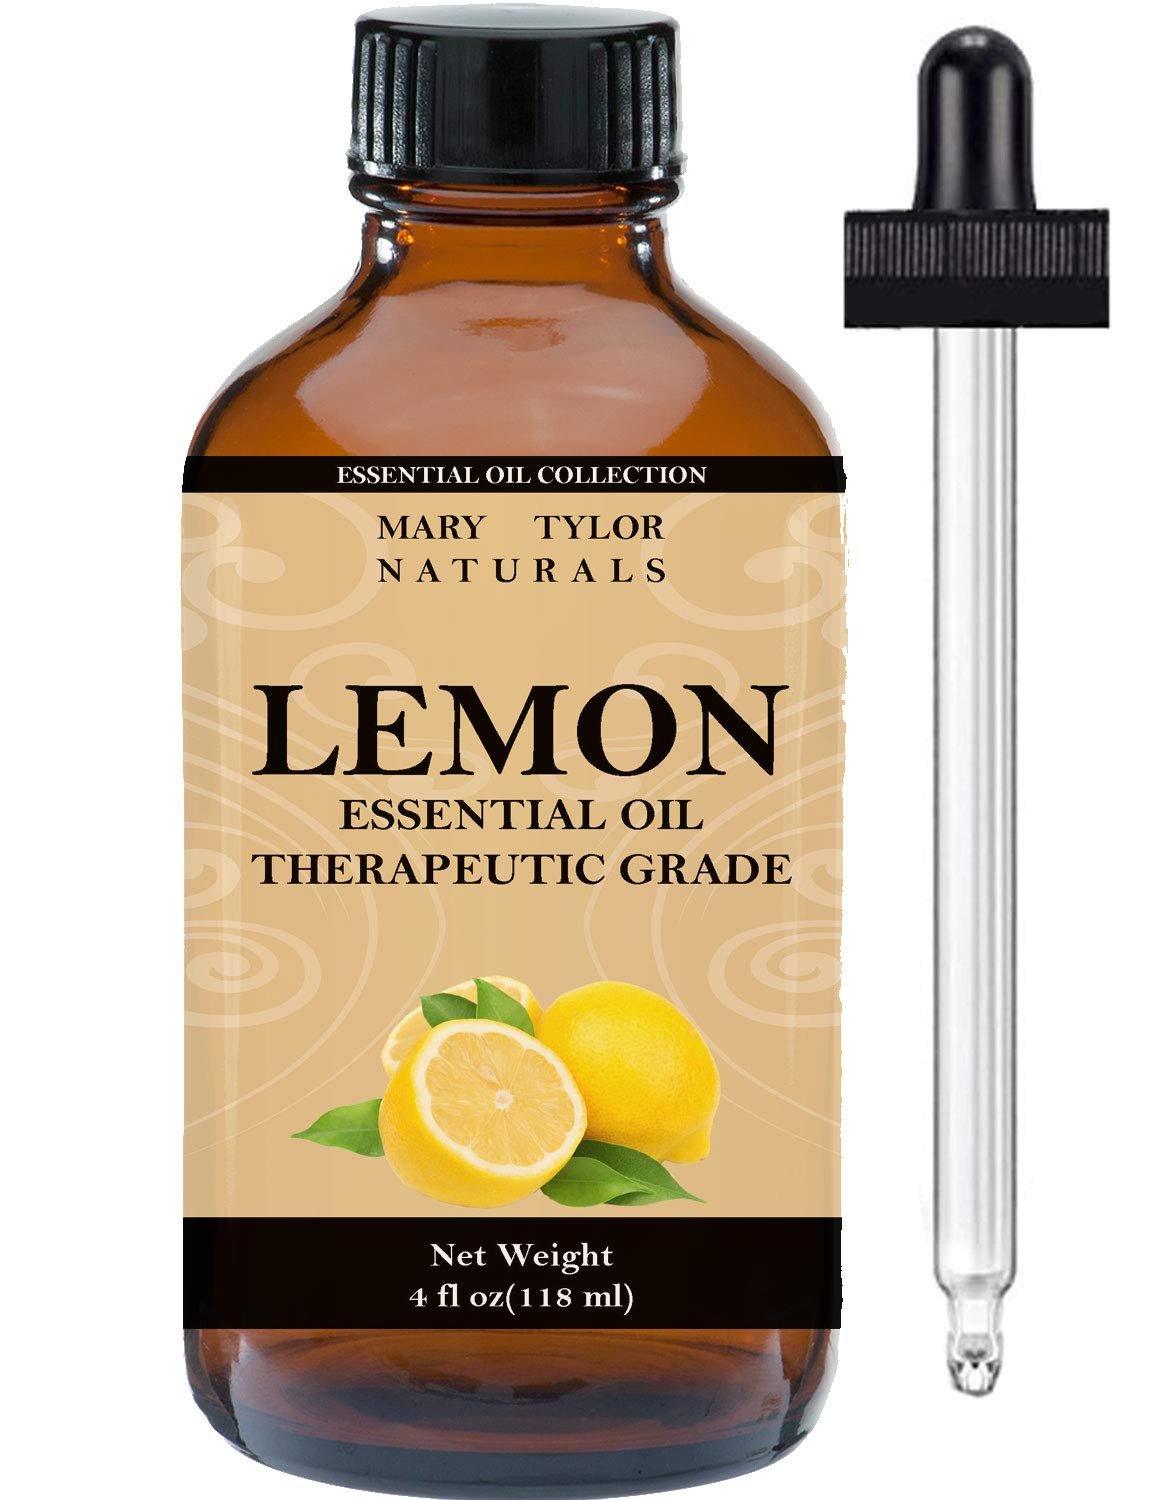 Lemon Essential Oil, Large 4 oz, by Mary Tylor Naturals, 100% Pure Essential Oil, Therapeutic Grade, 100% Pure and Natural, Perfect for Aromatherapy, DIY, Relaxation and Improved Mood